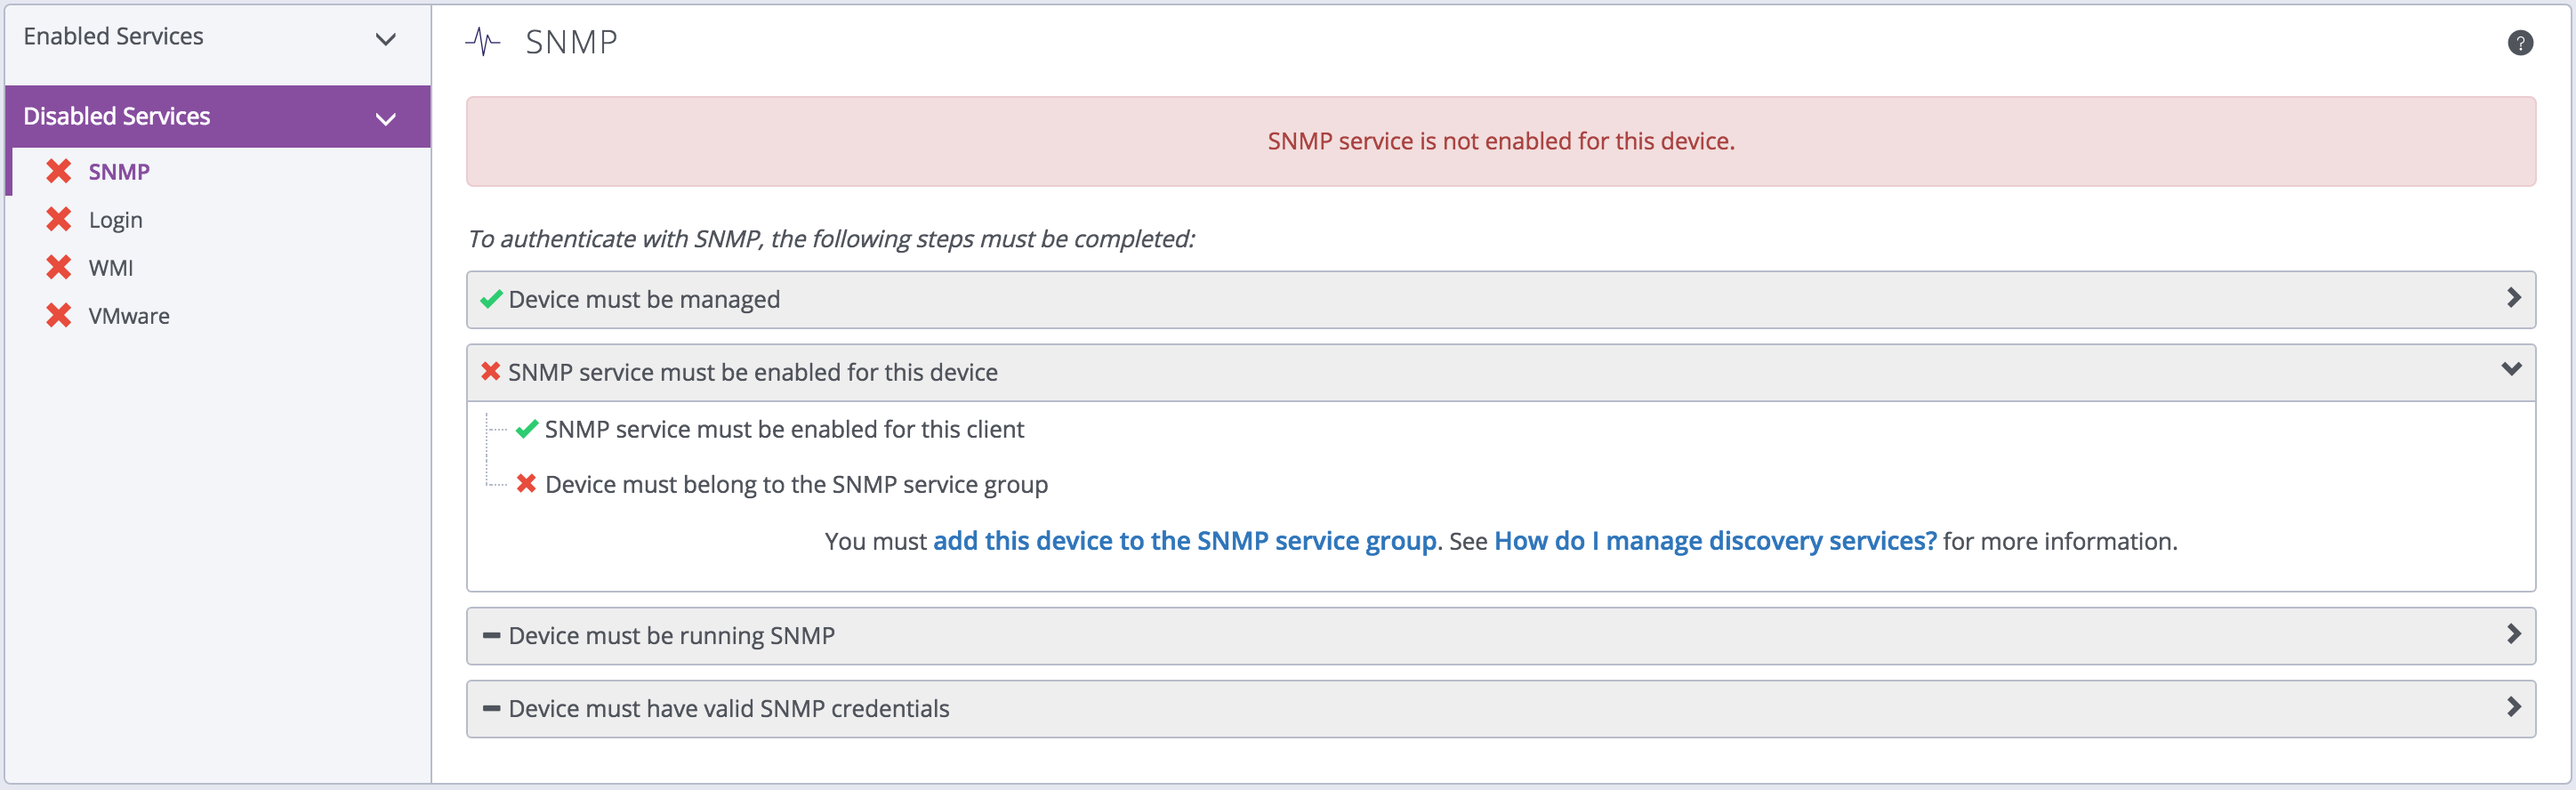 SNMP3.png